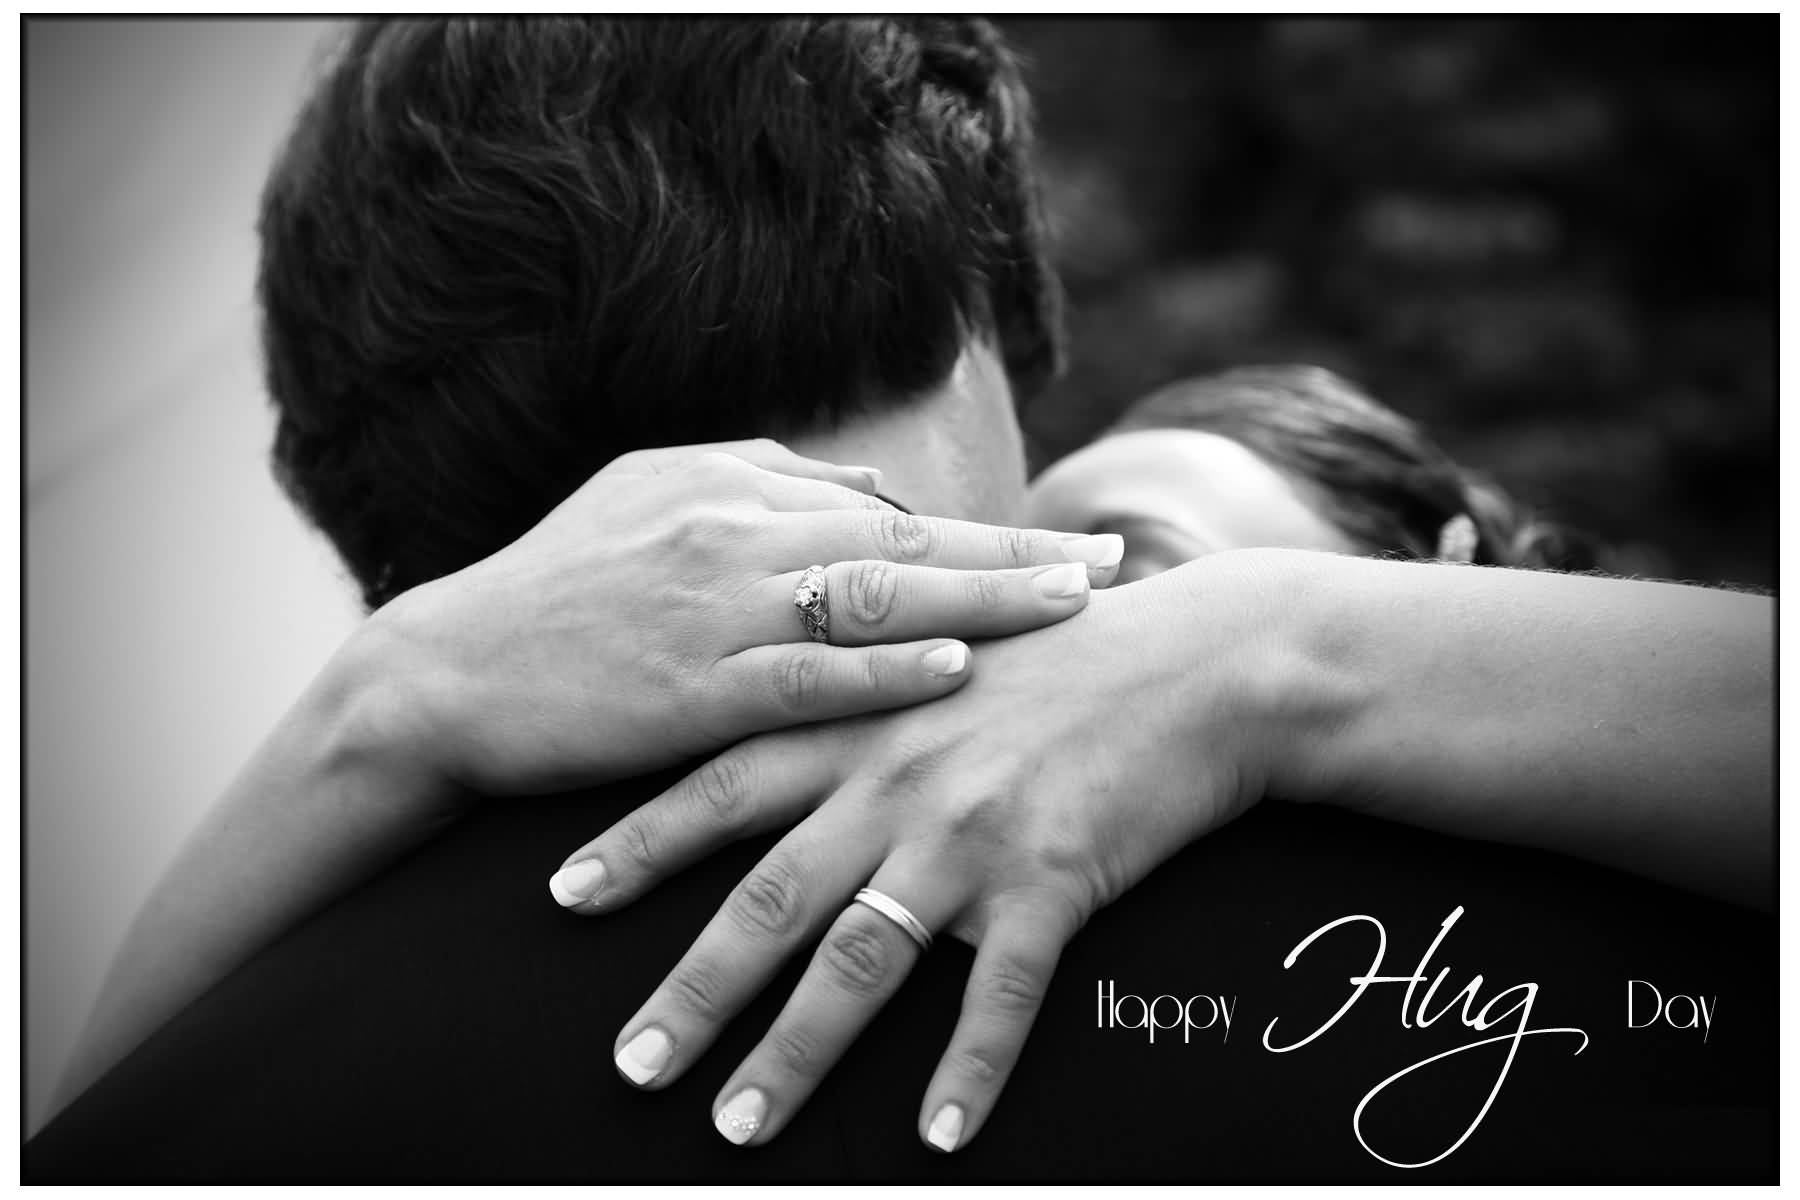 Happy Hug Day attractive wallpaper image for new couple